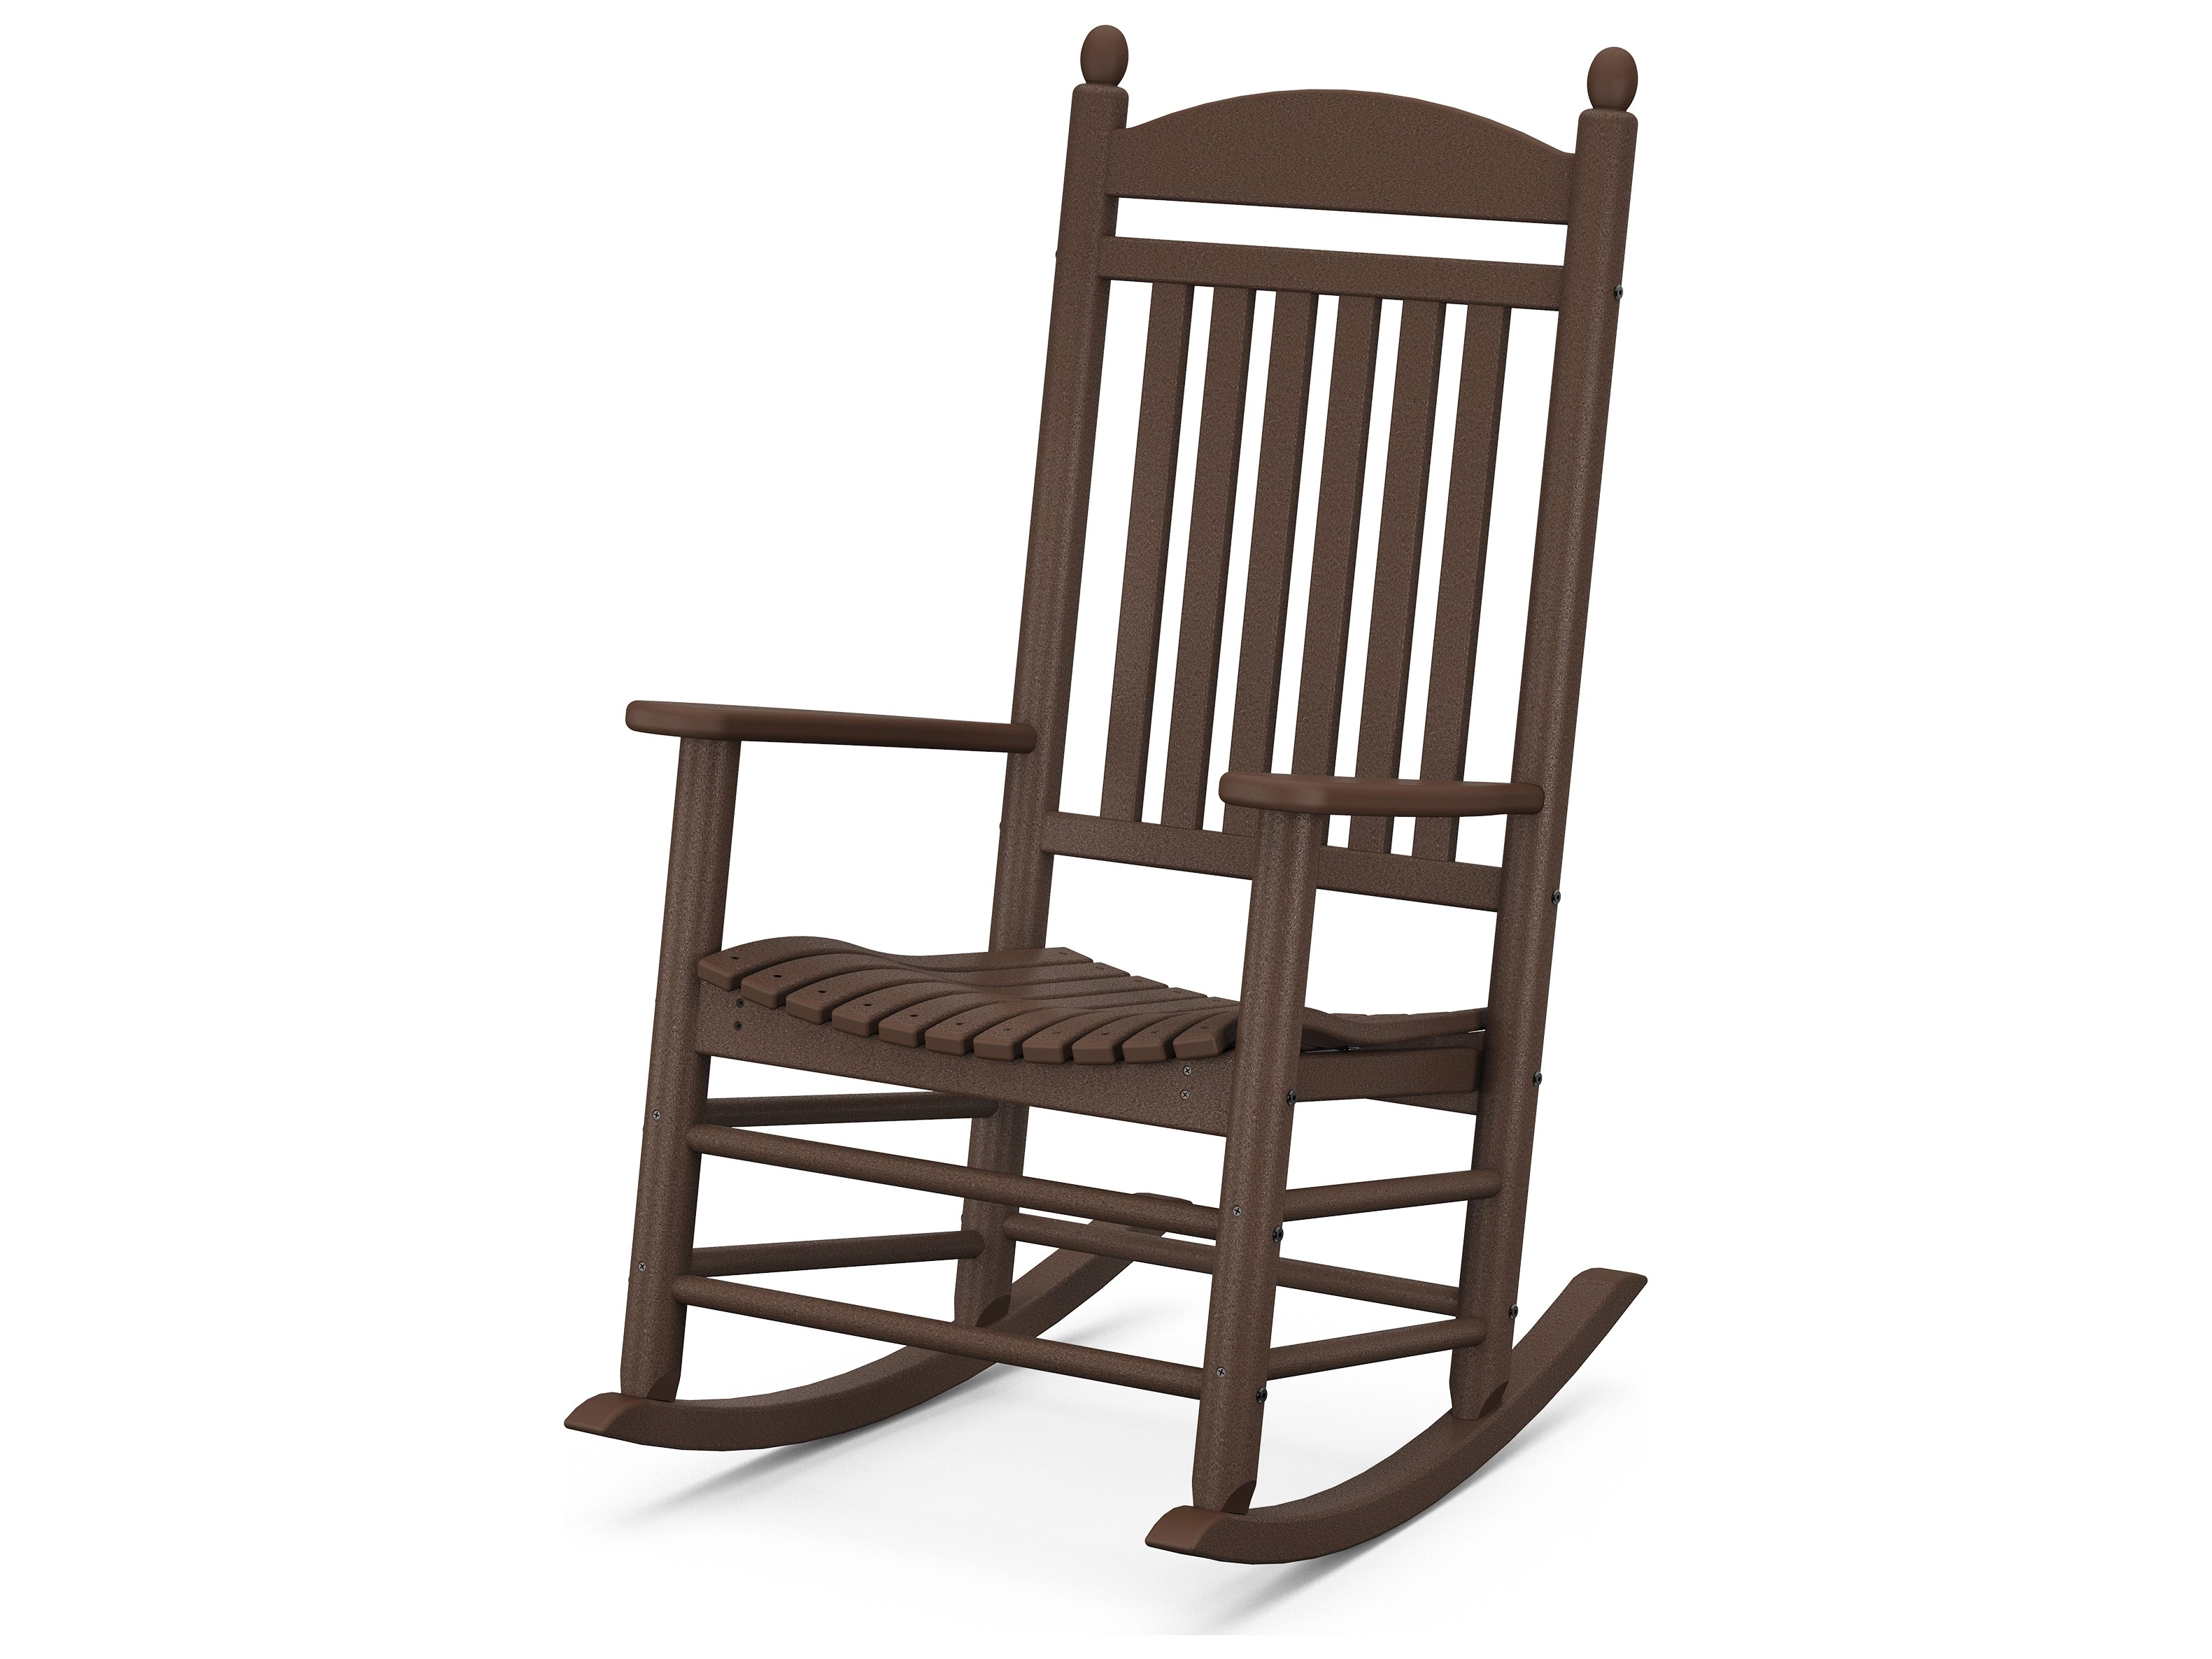 Polywood Rocking Chairs Polywood Rocker Recycled Plastic Arm Lounge Chair Pwj147